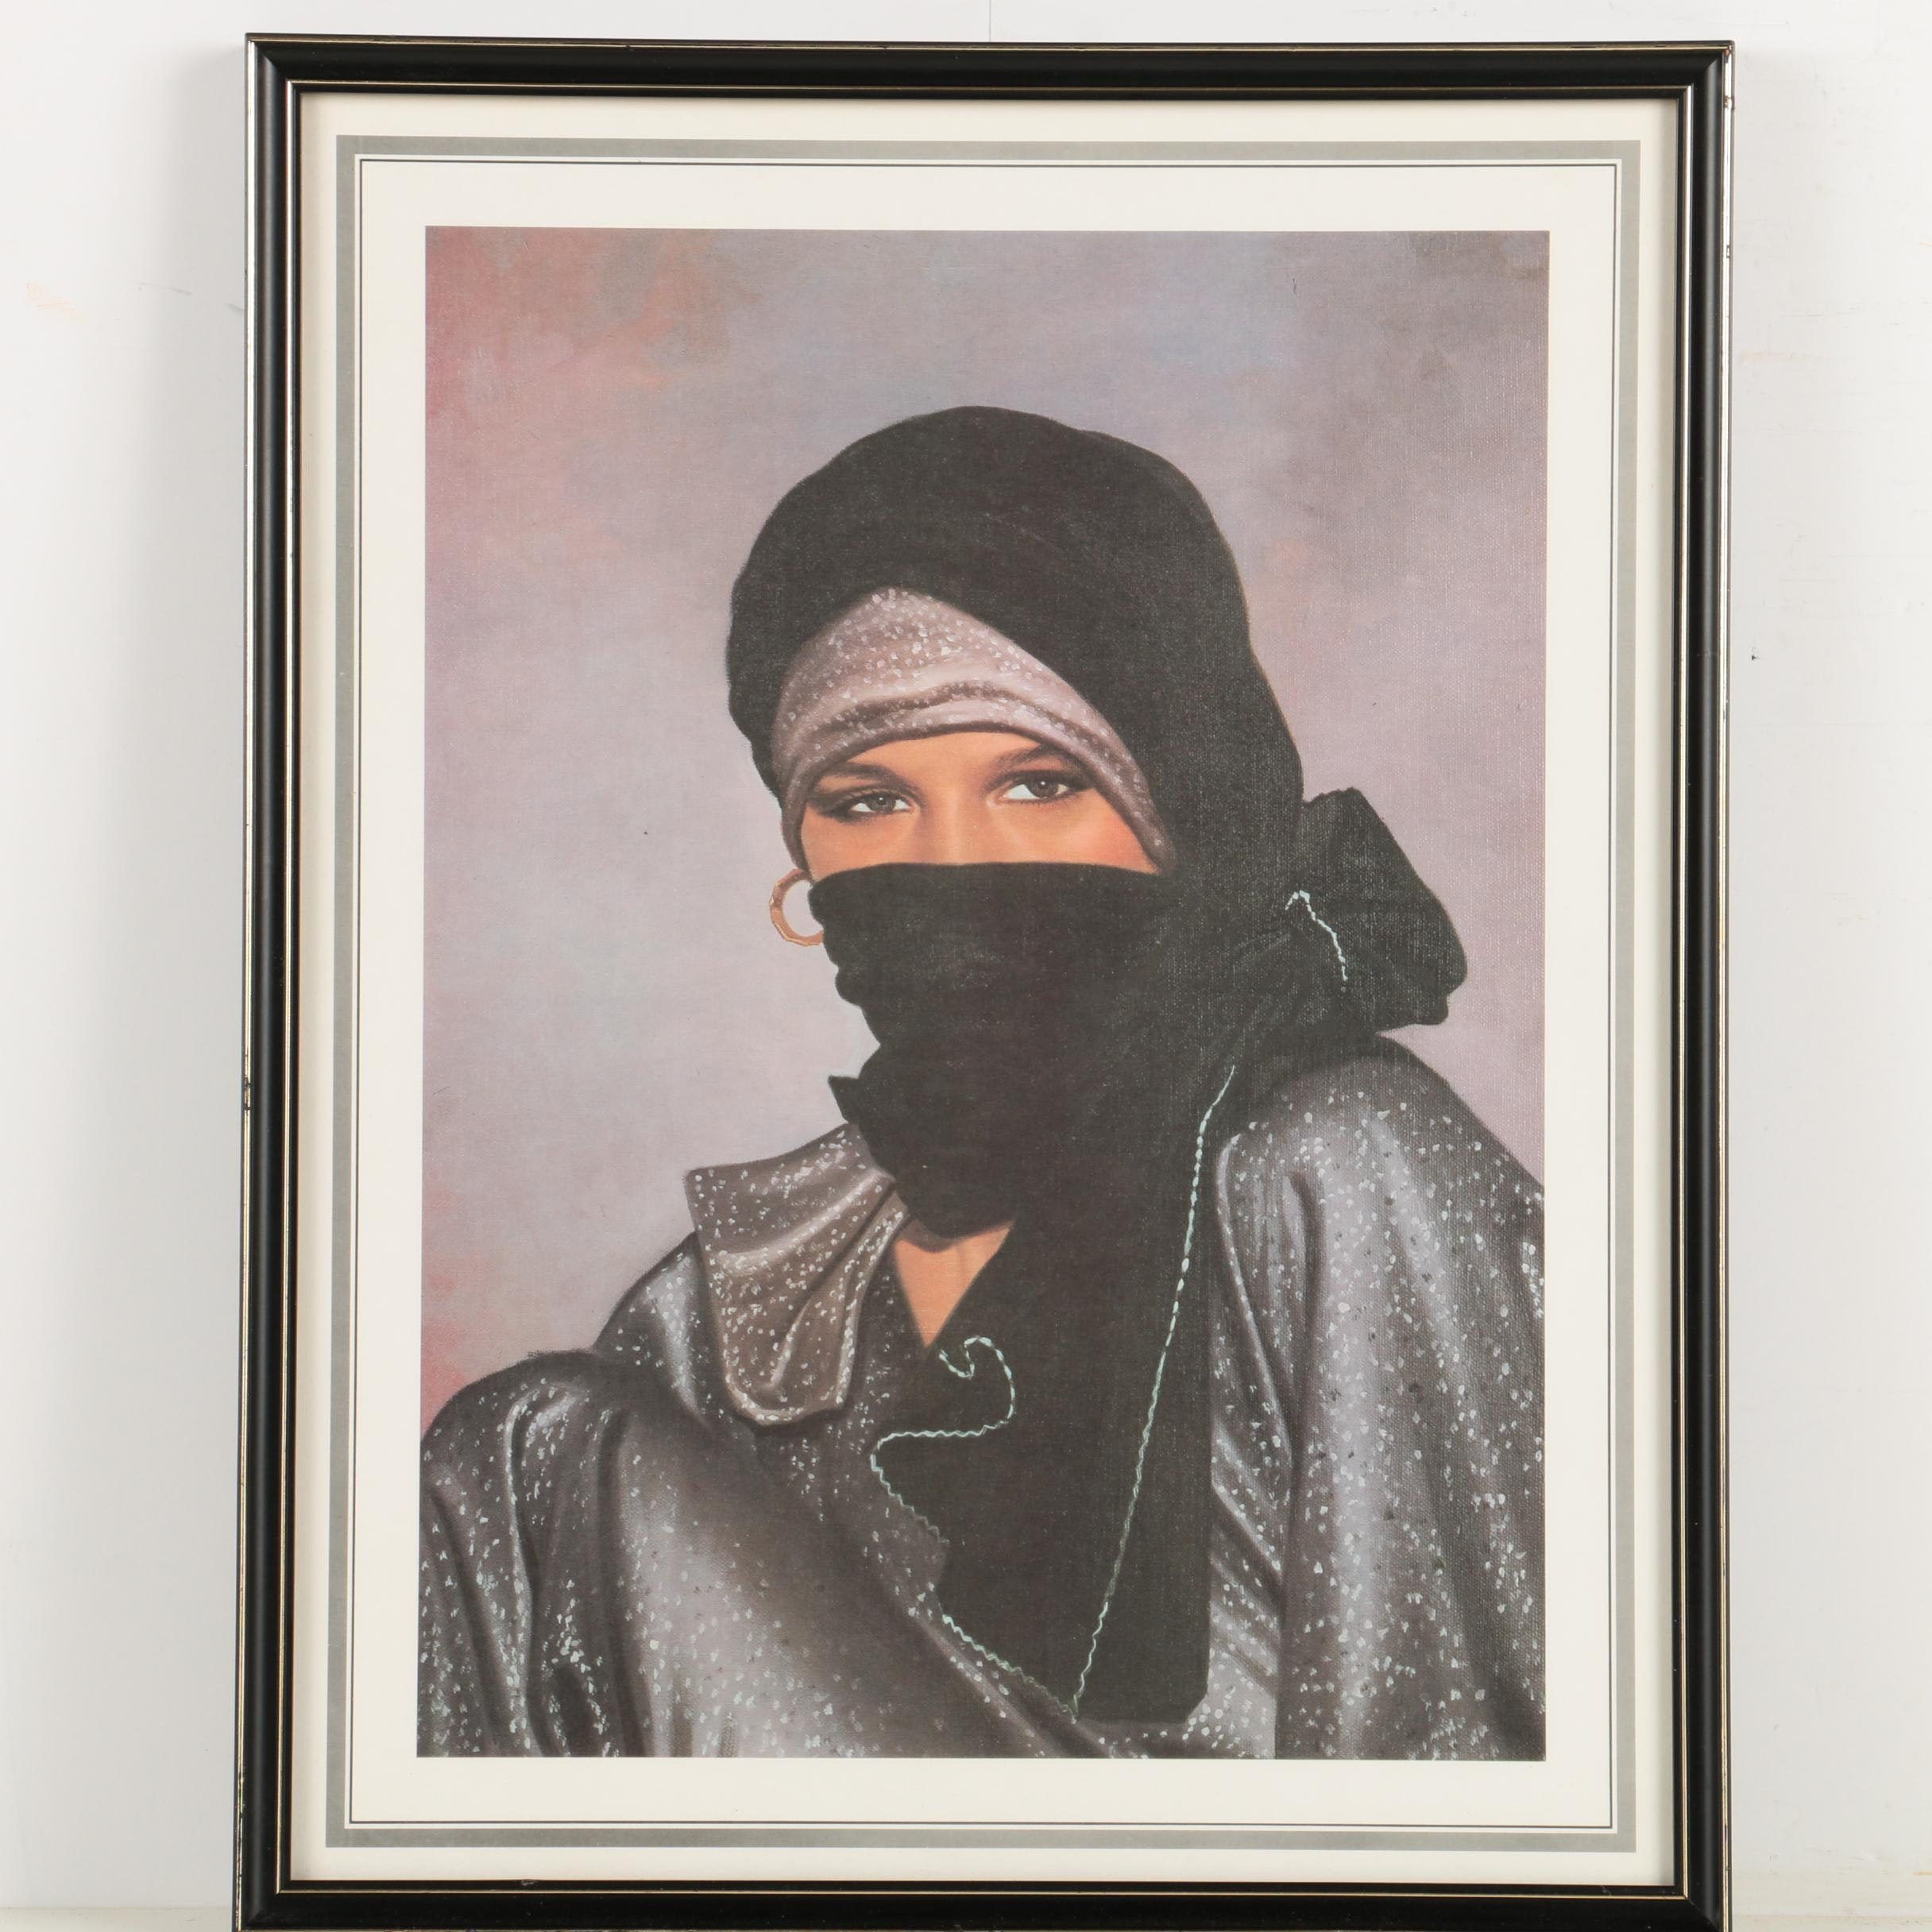 Offset Lithograph on Canvas Board of a Veiled Woman